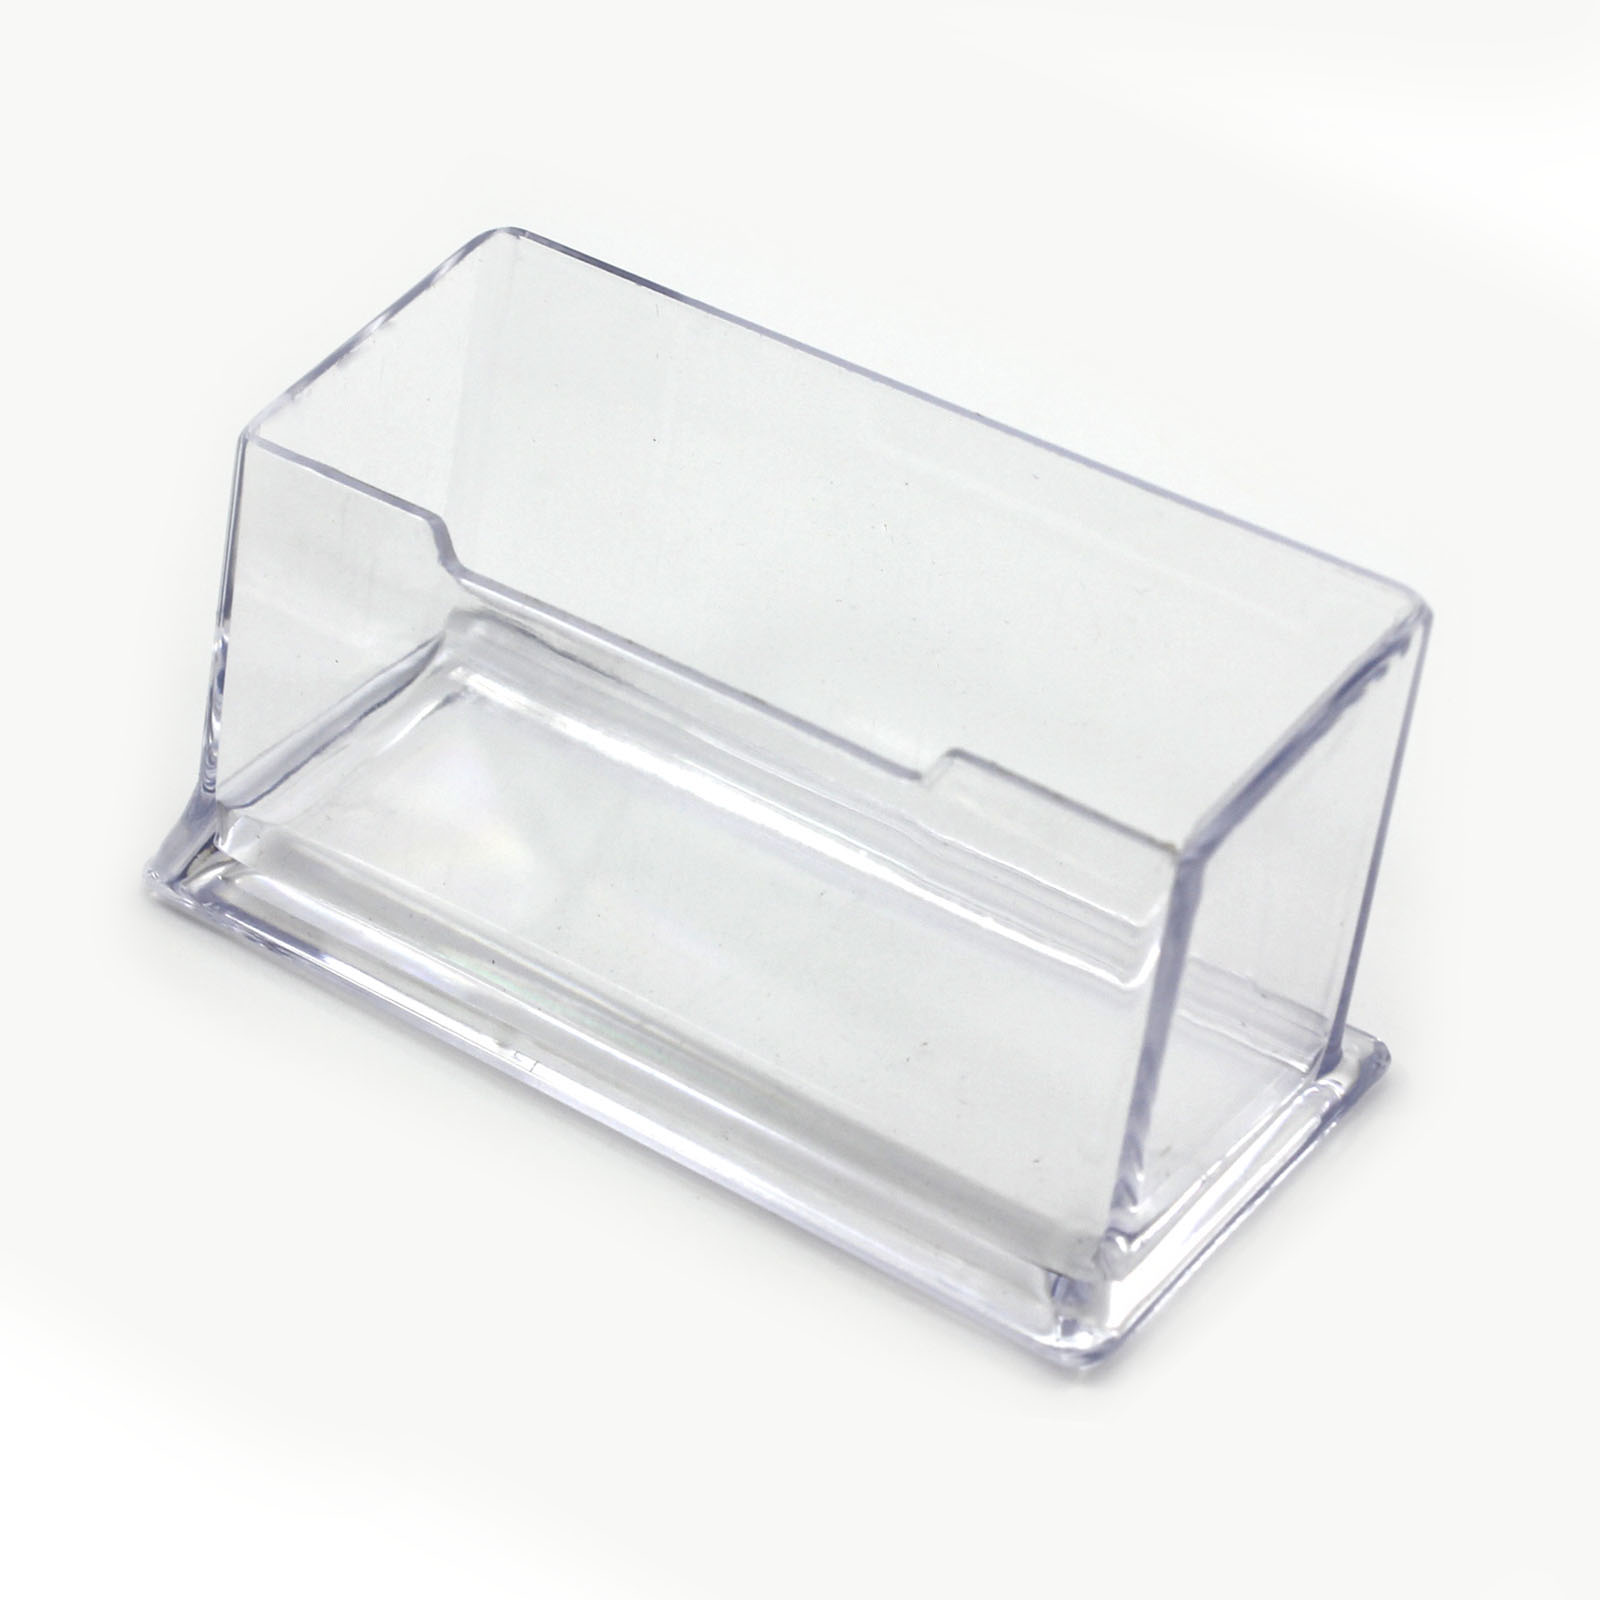 Practical Transparent Cuboid Acrylic Desktop Business Card Holder ...